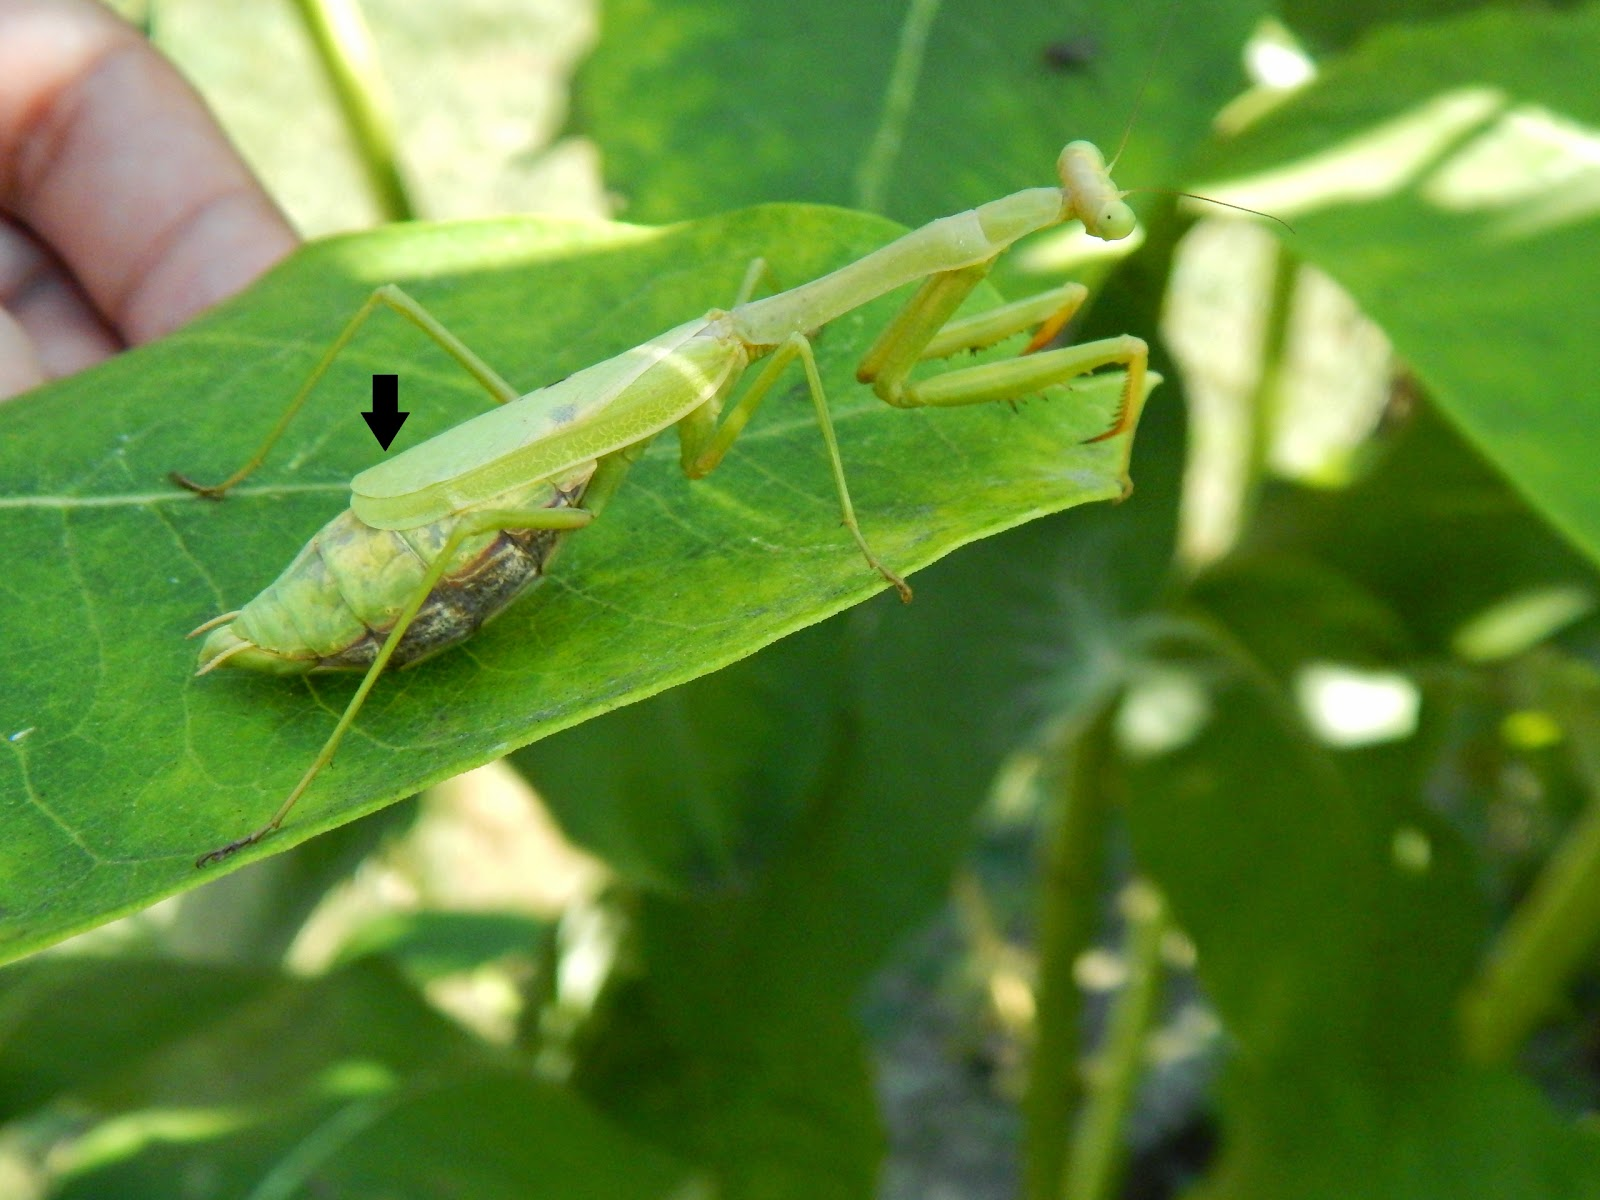 Capital Naturalist By Alonso Abugattas A Tale Of Two Mantis